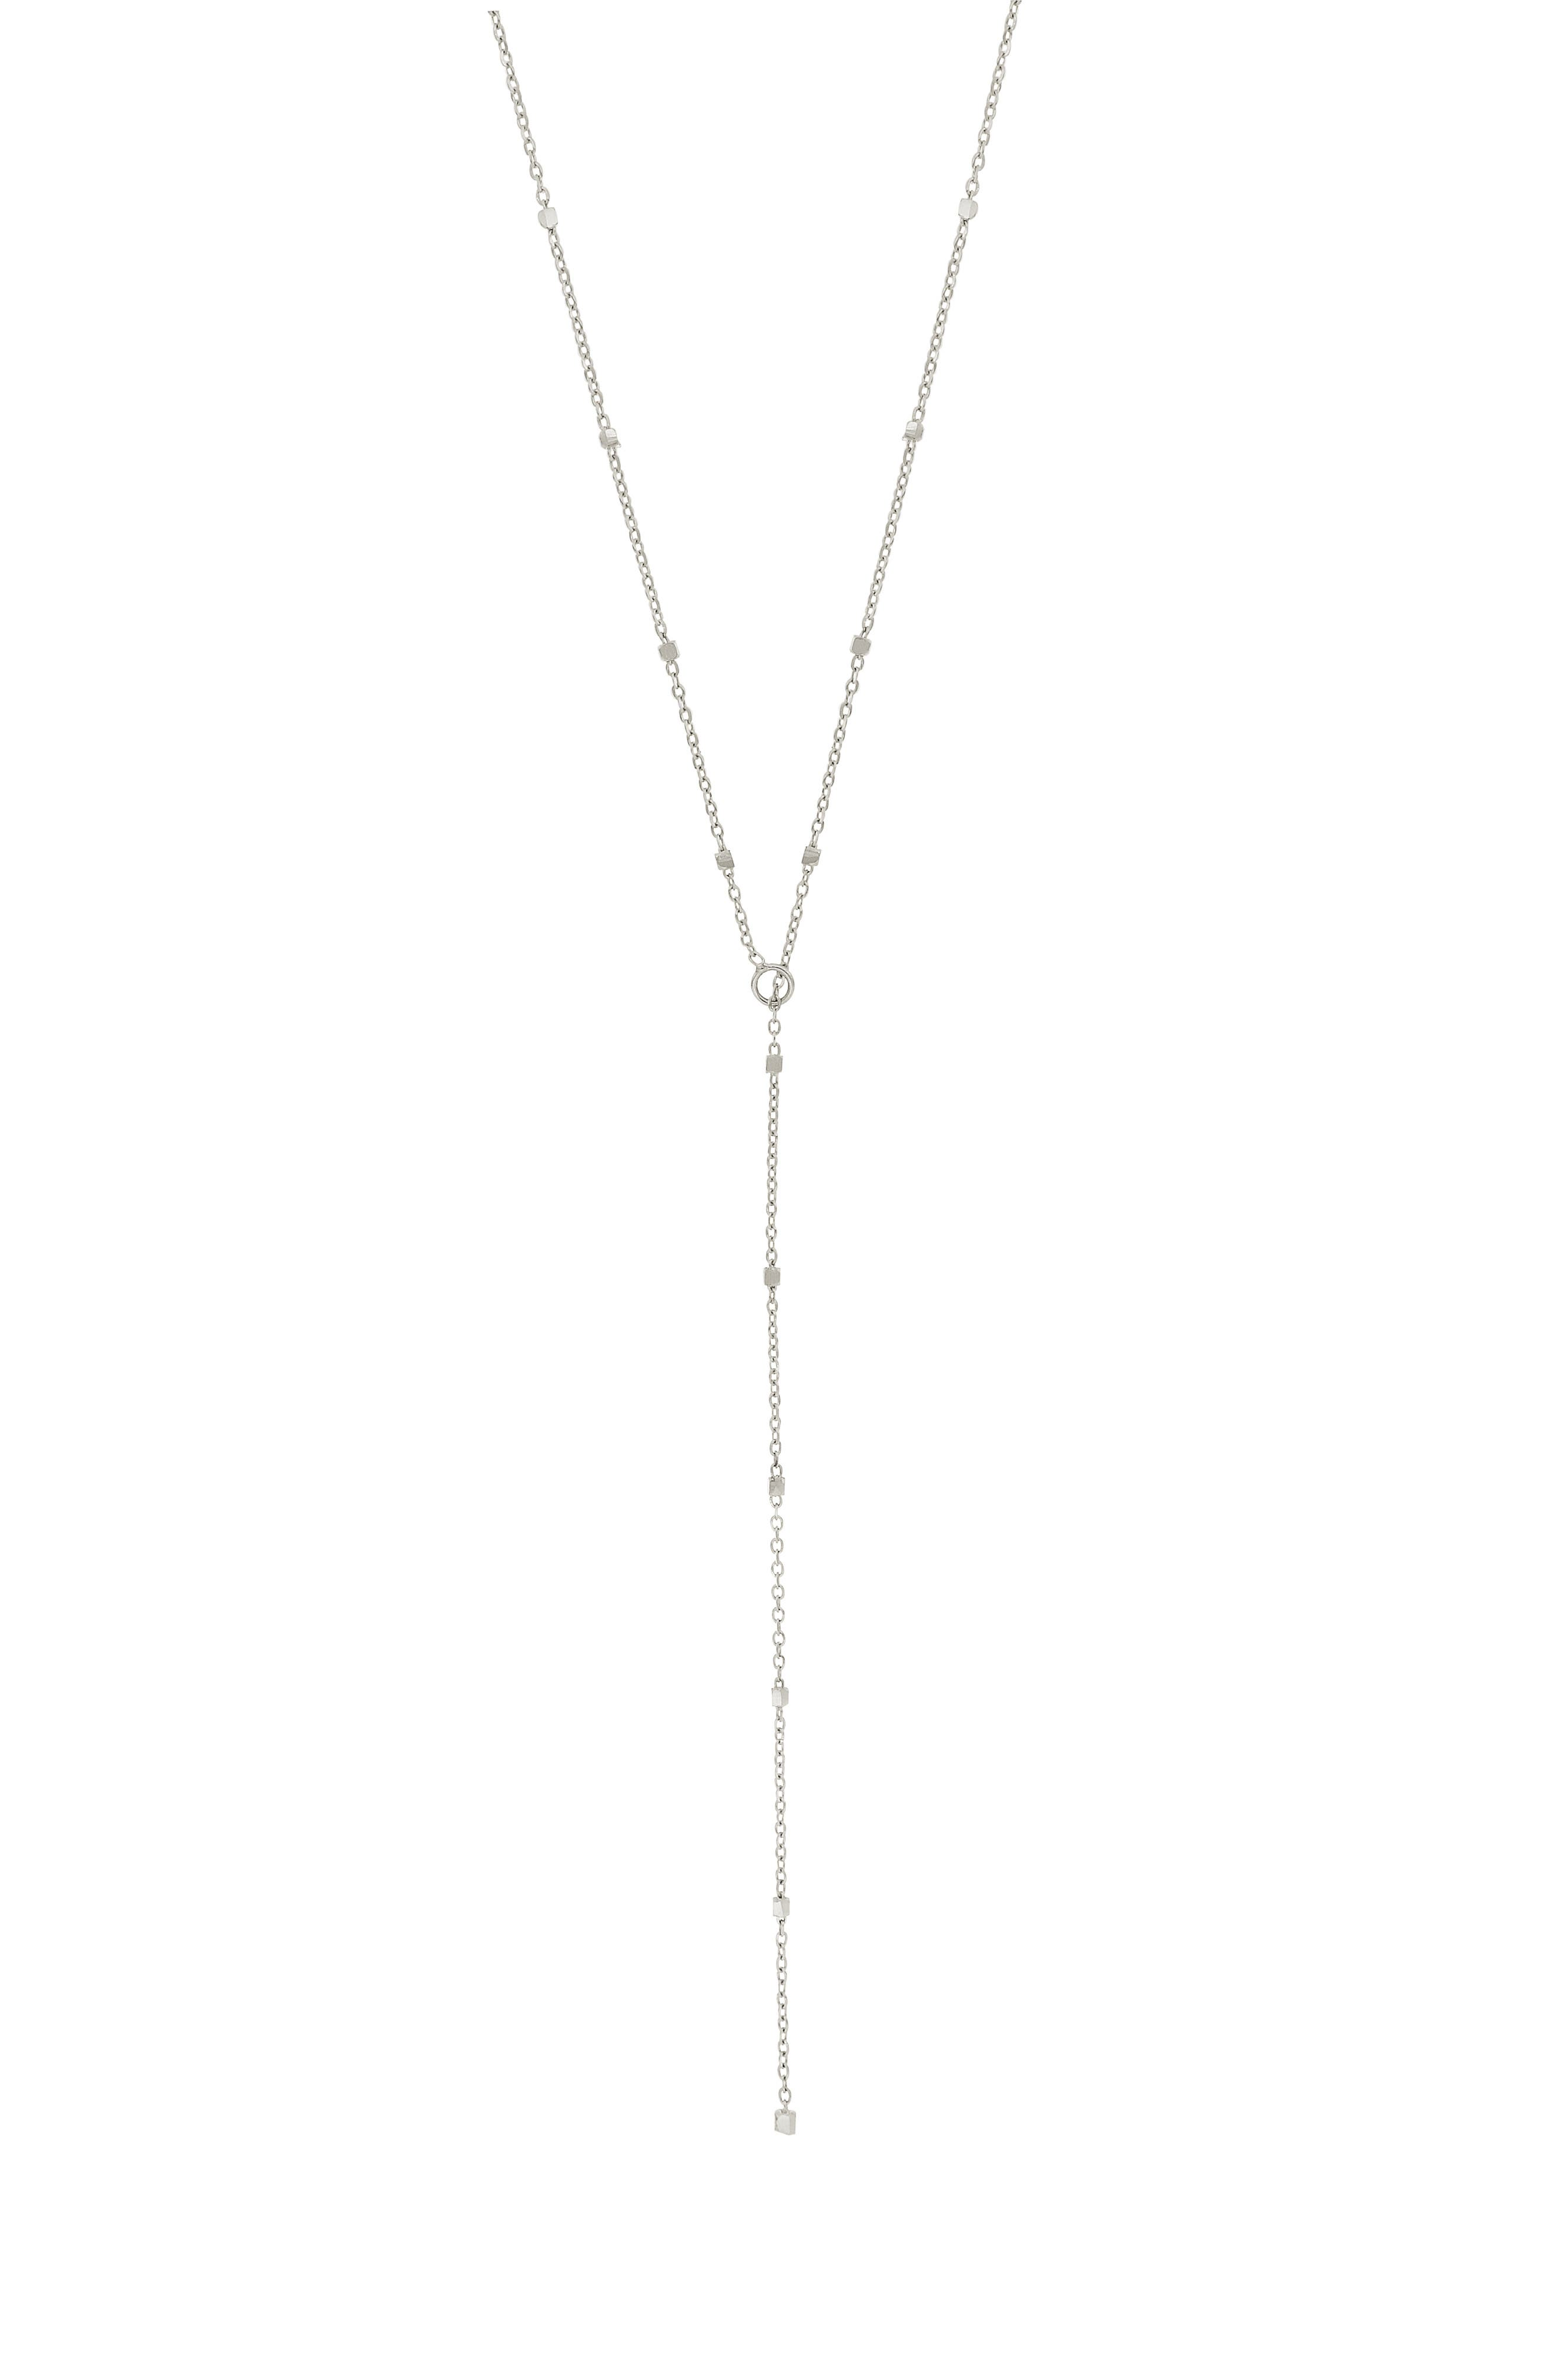 Modern and minimalist, this handcrafted necklace is anchored with simple shapes of 14-karat gold. Style Name: Bony Levy Lariat Necklace (Nordstrom Exclusive). Style Number: 5947567. Available in stores.